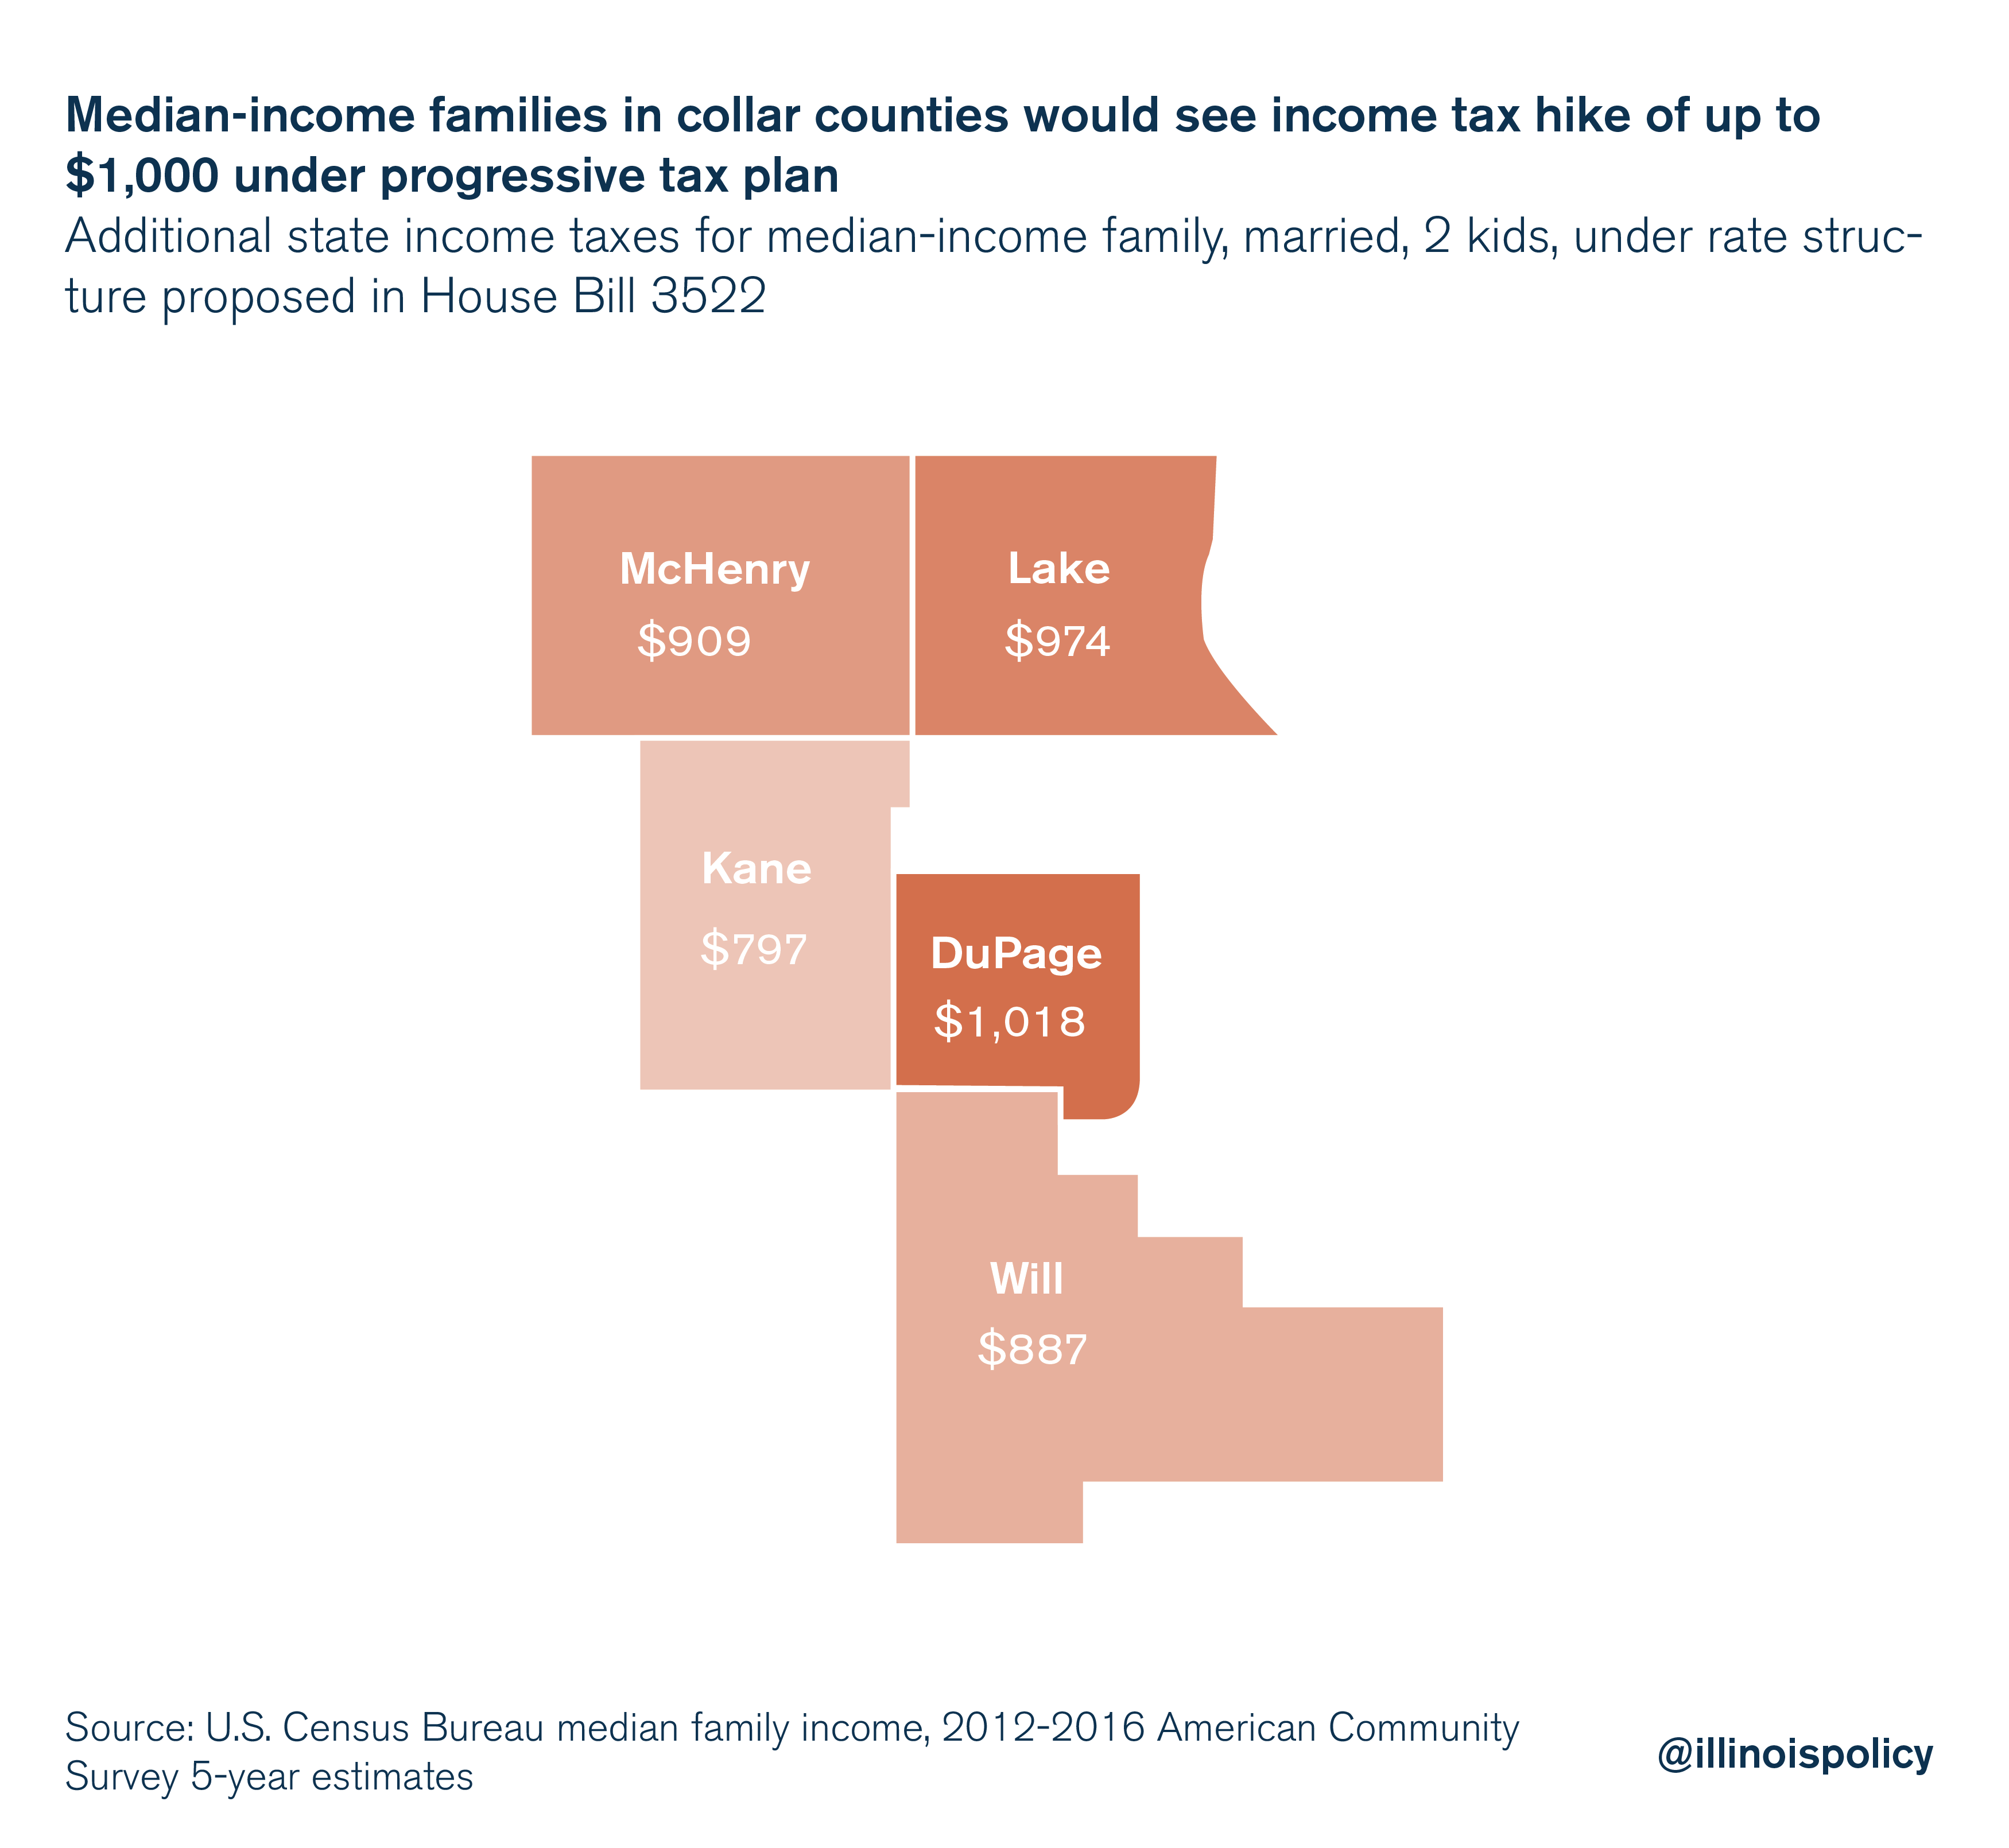 Median-income families in collar counties would see income tax hike of up to $1,000 under progressive tax plan